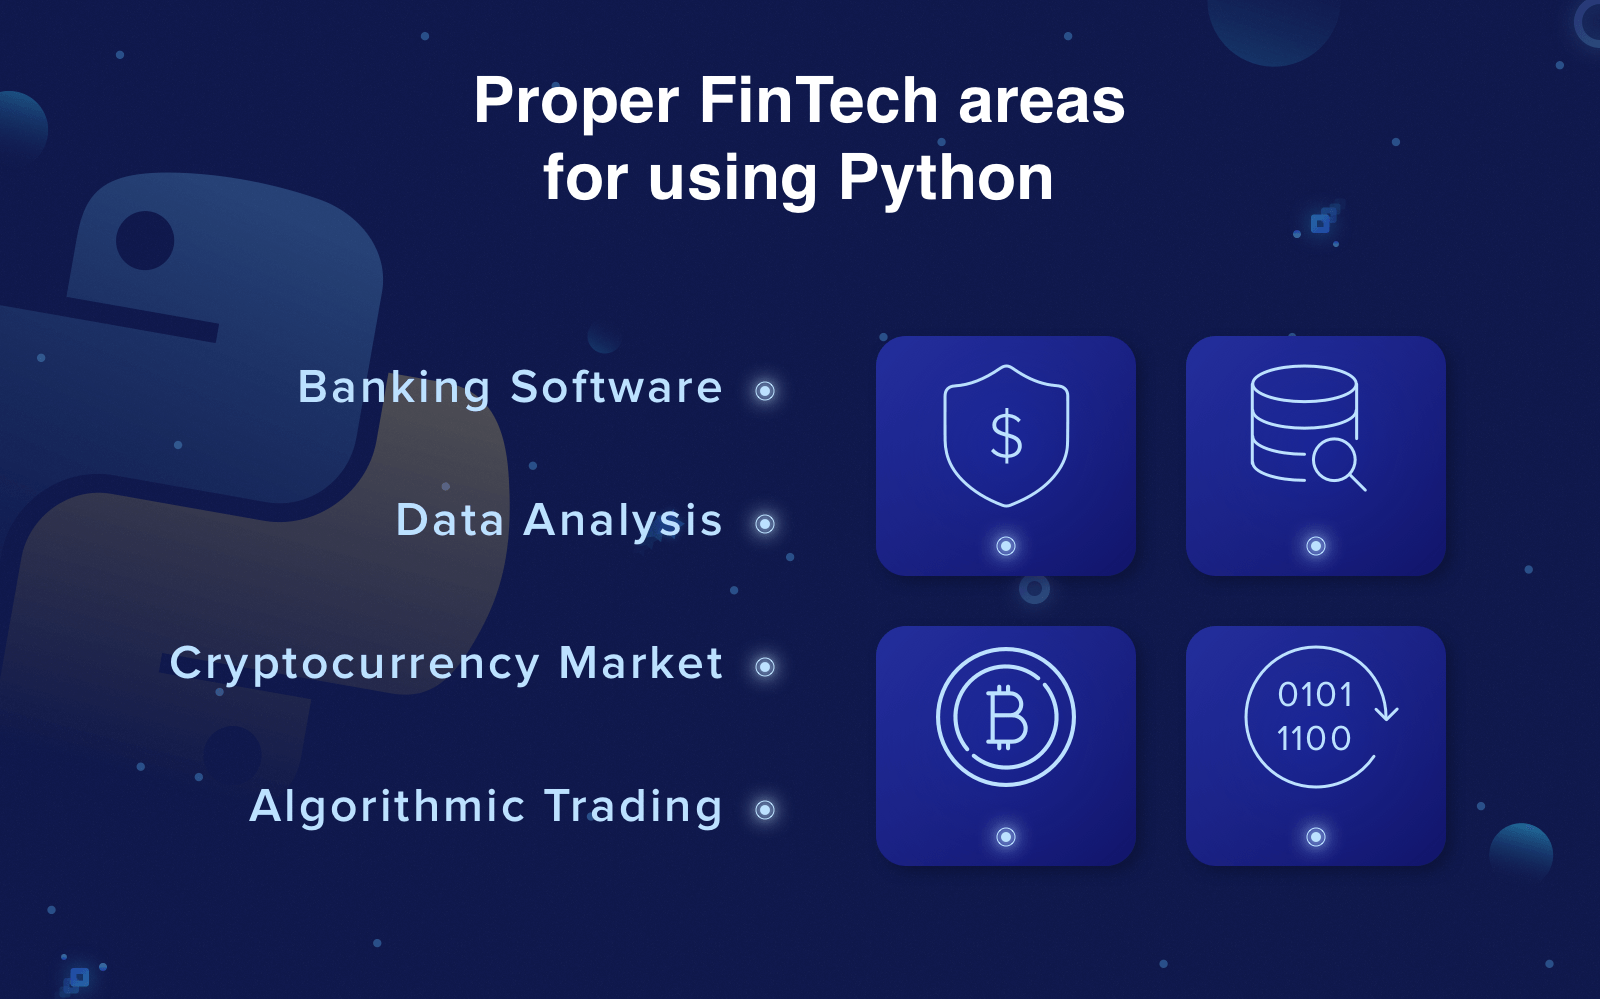 See Why Python Is The Best Programming Language For FinTech